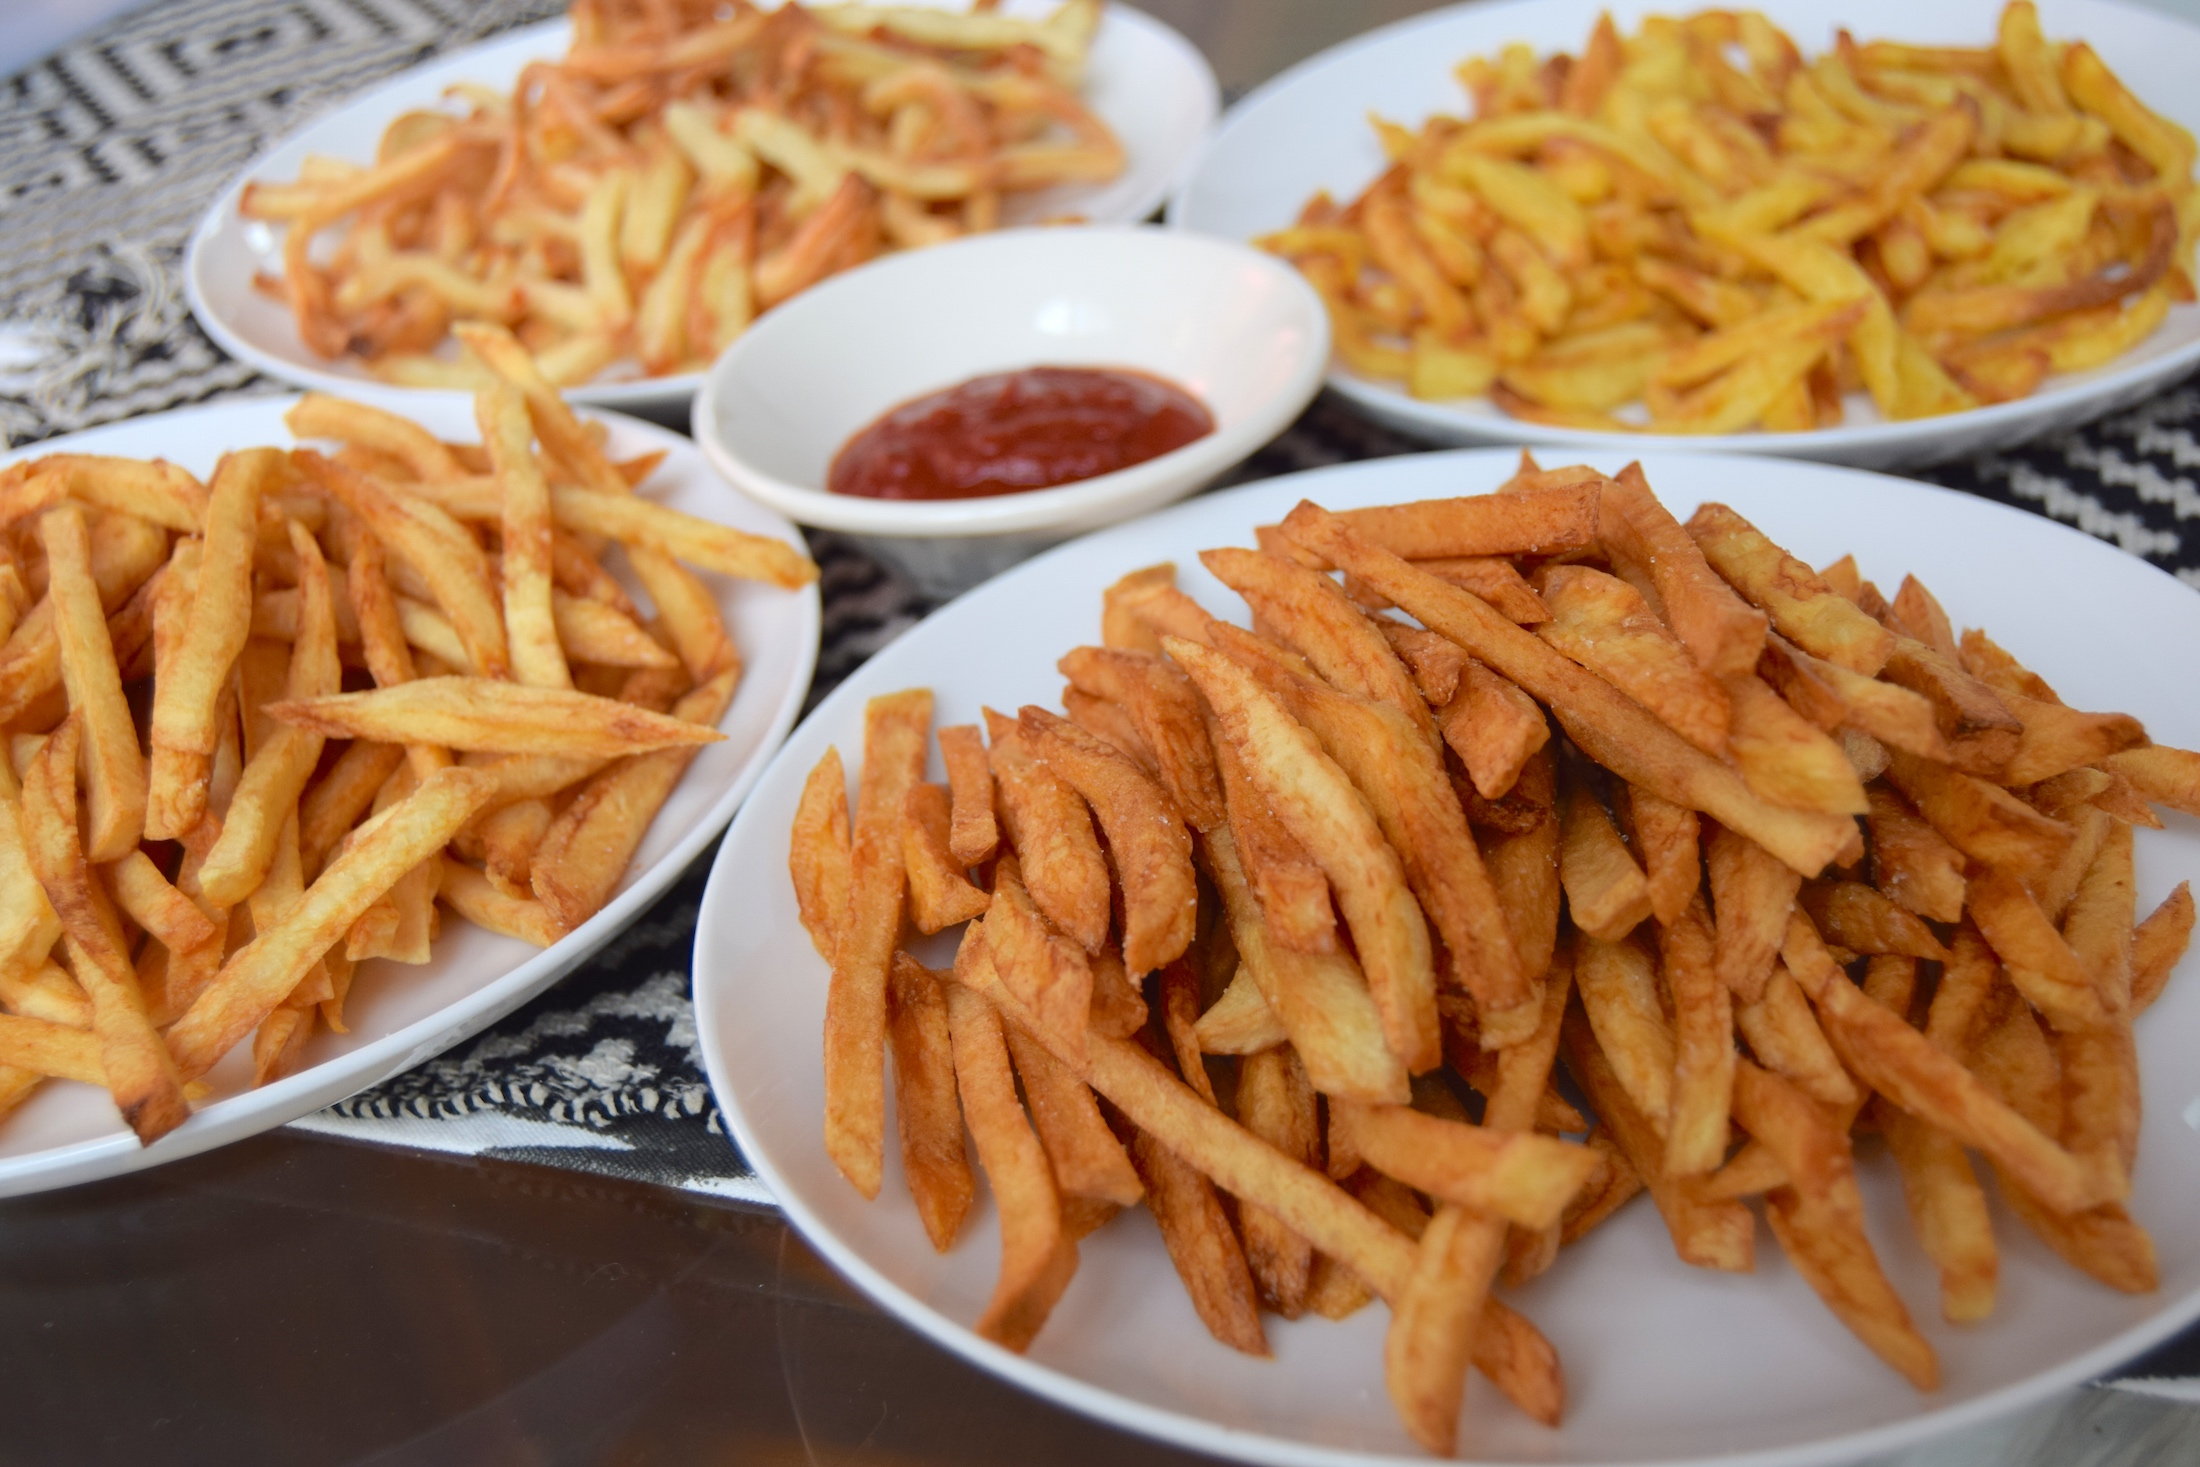 French fries and other simple dishes of potatoes